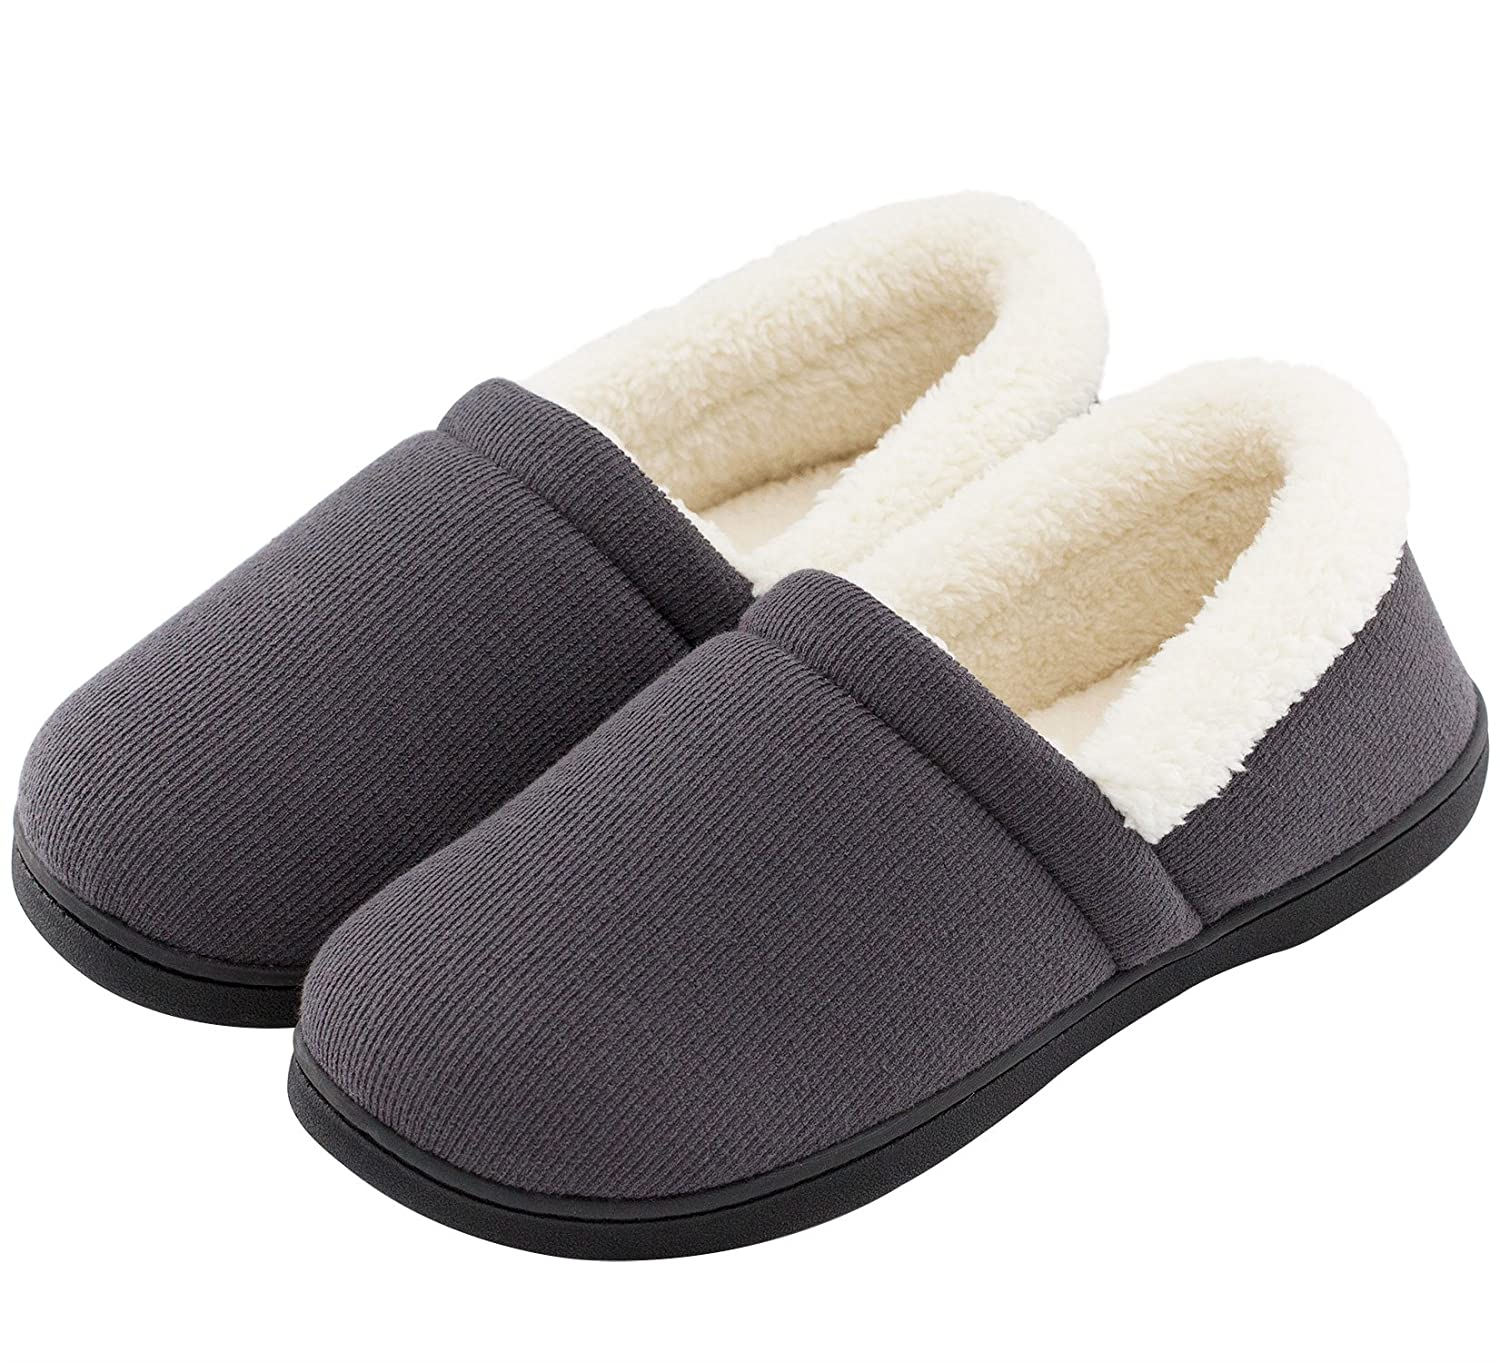 7bdae49007 Men's Comfy Fuzzy Knit Cotton Memory Foam House Shoes Slippers w/Indoor,  Outdoor Sole